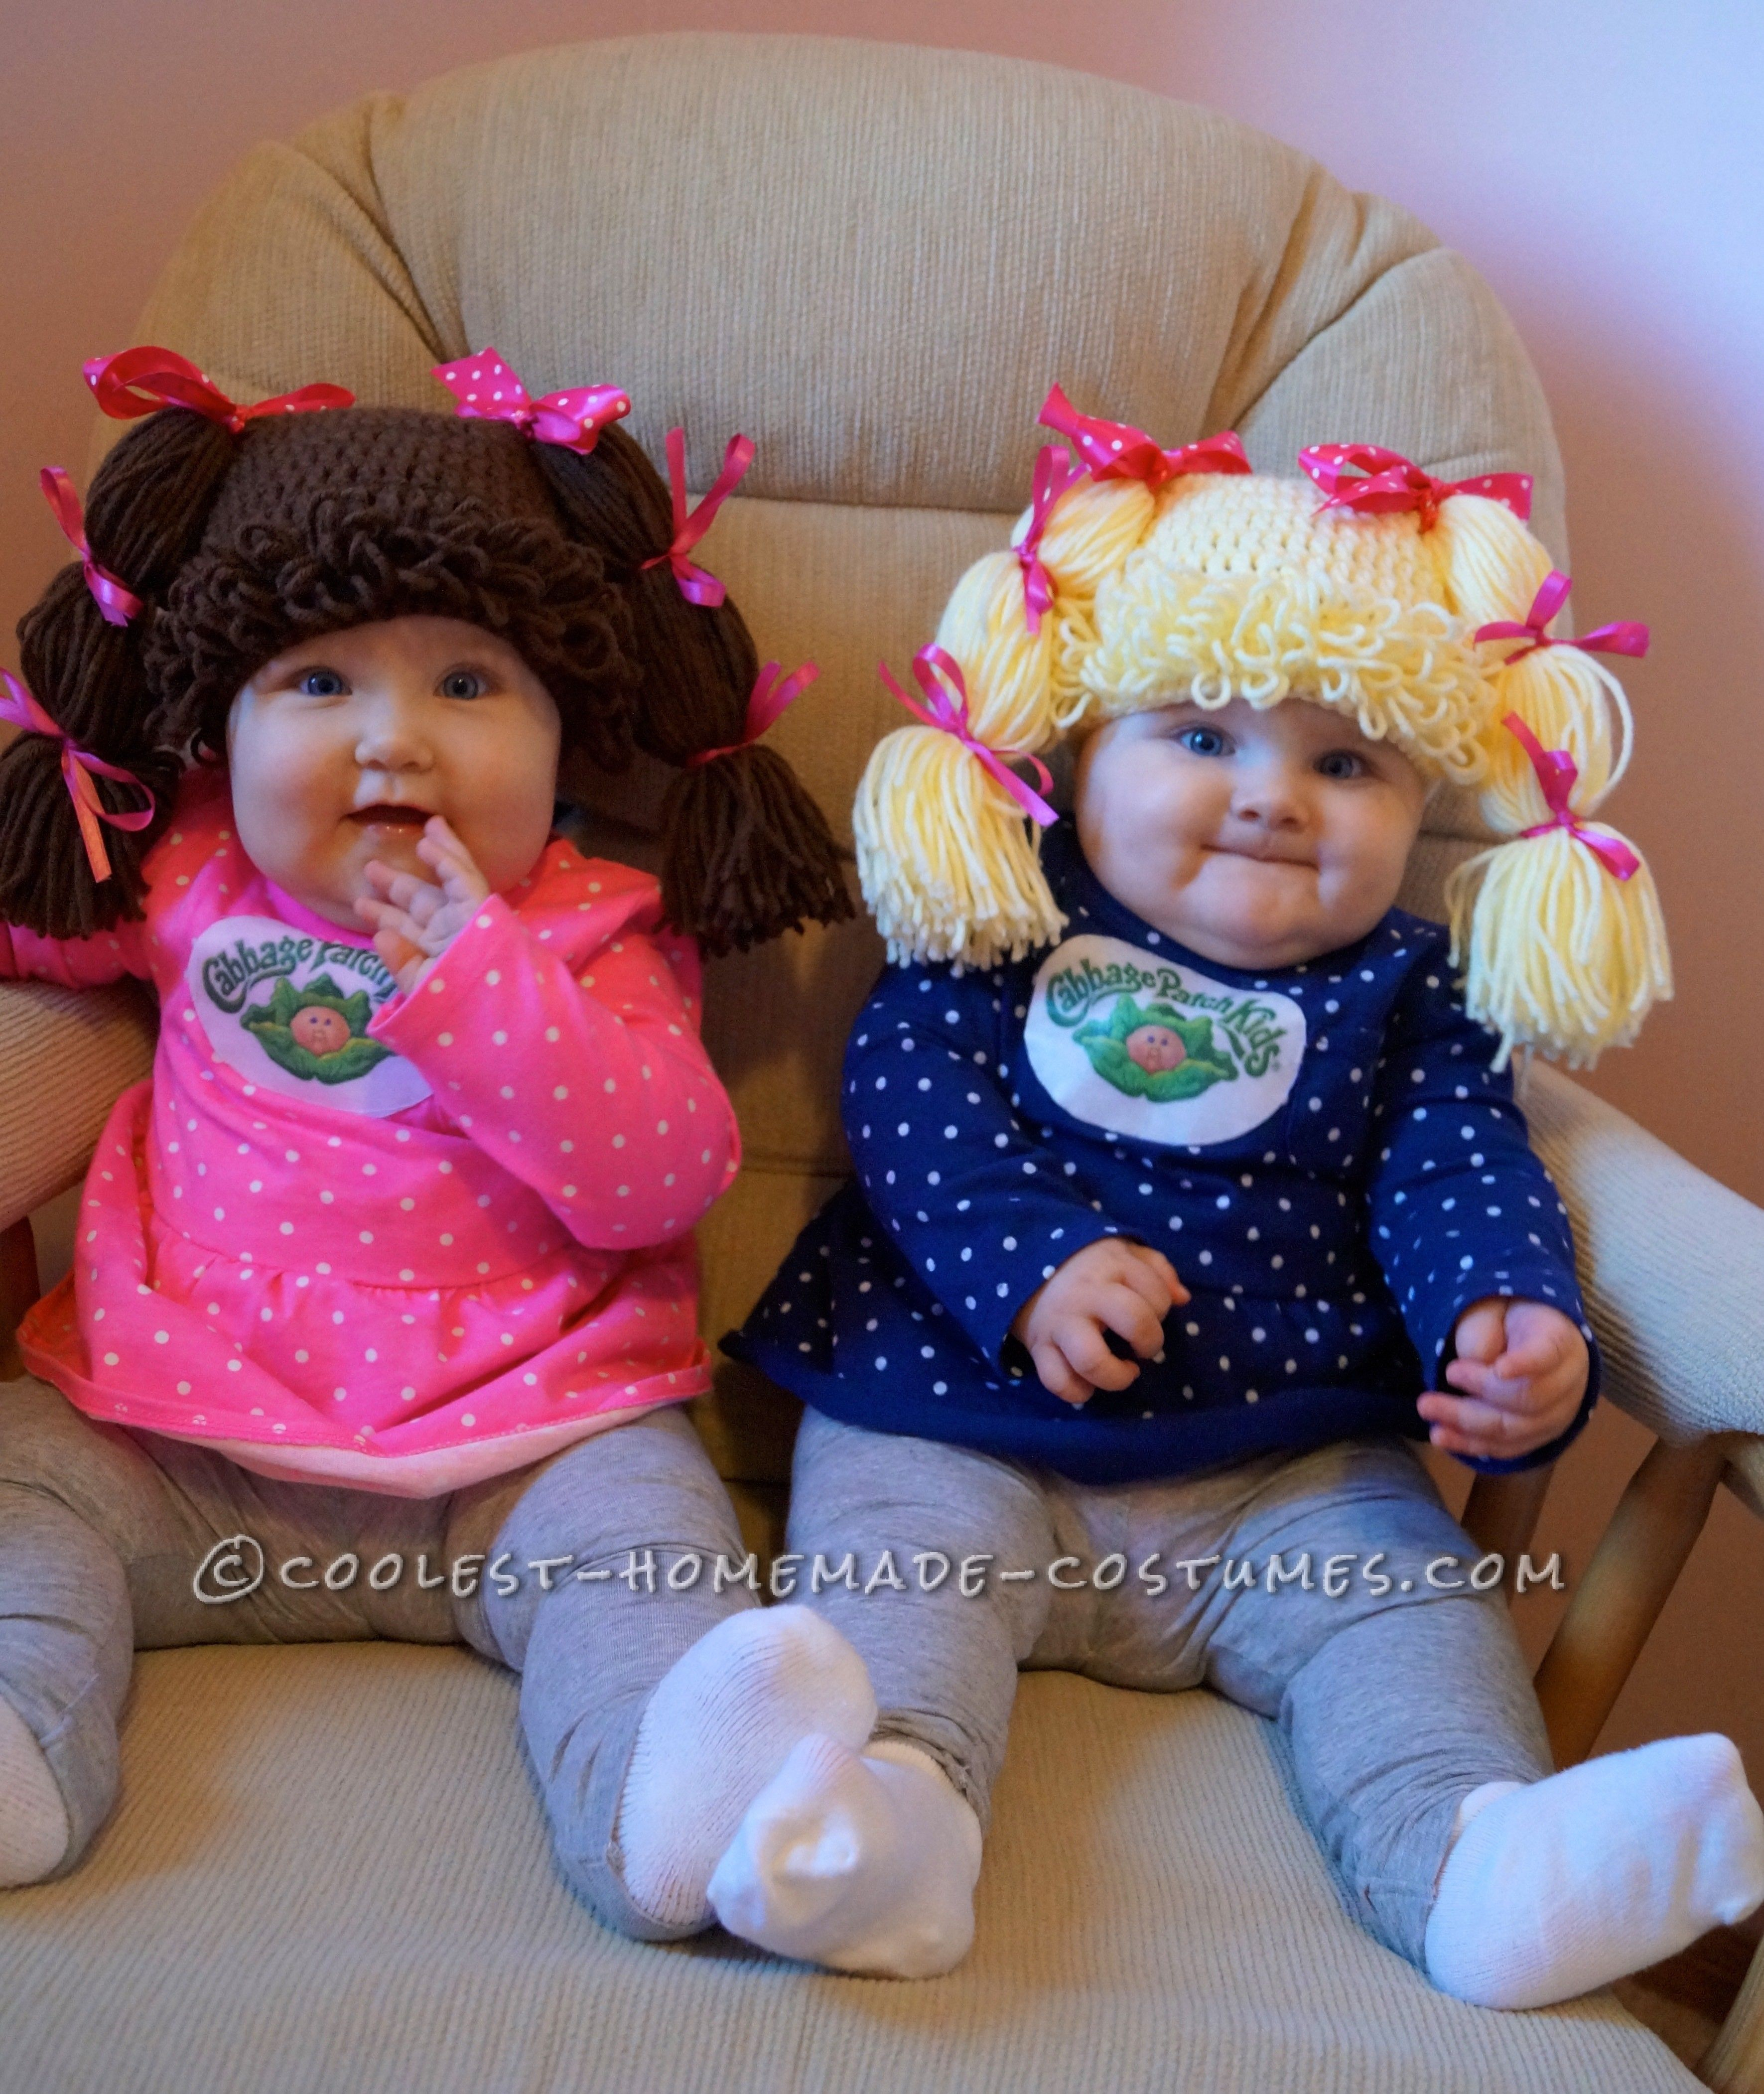 Easy and Comfy Costume for Babies: Cabbage Patch Twins | Halloween ...